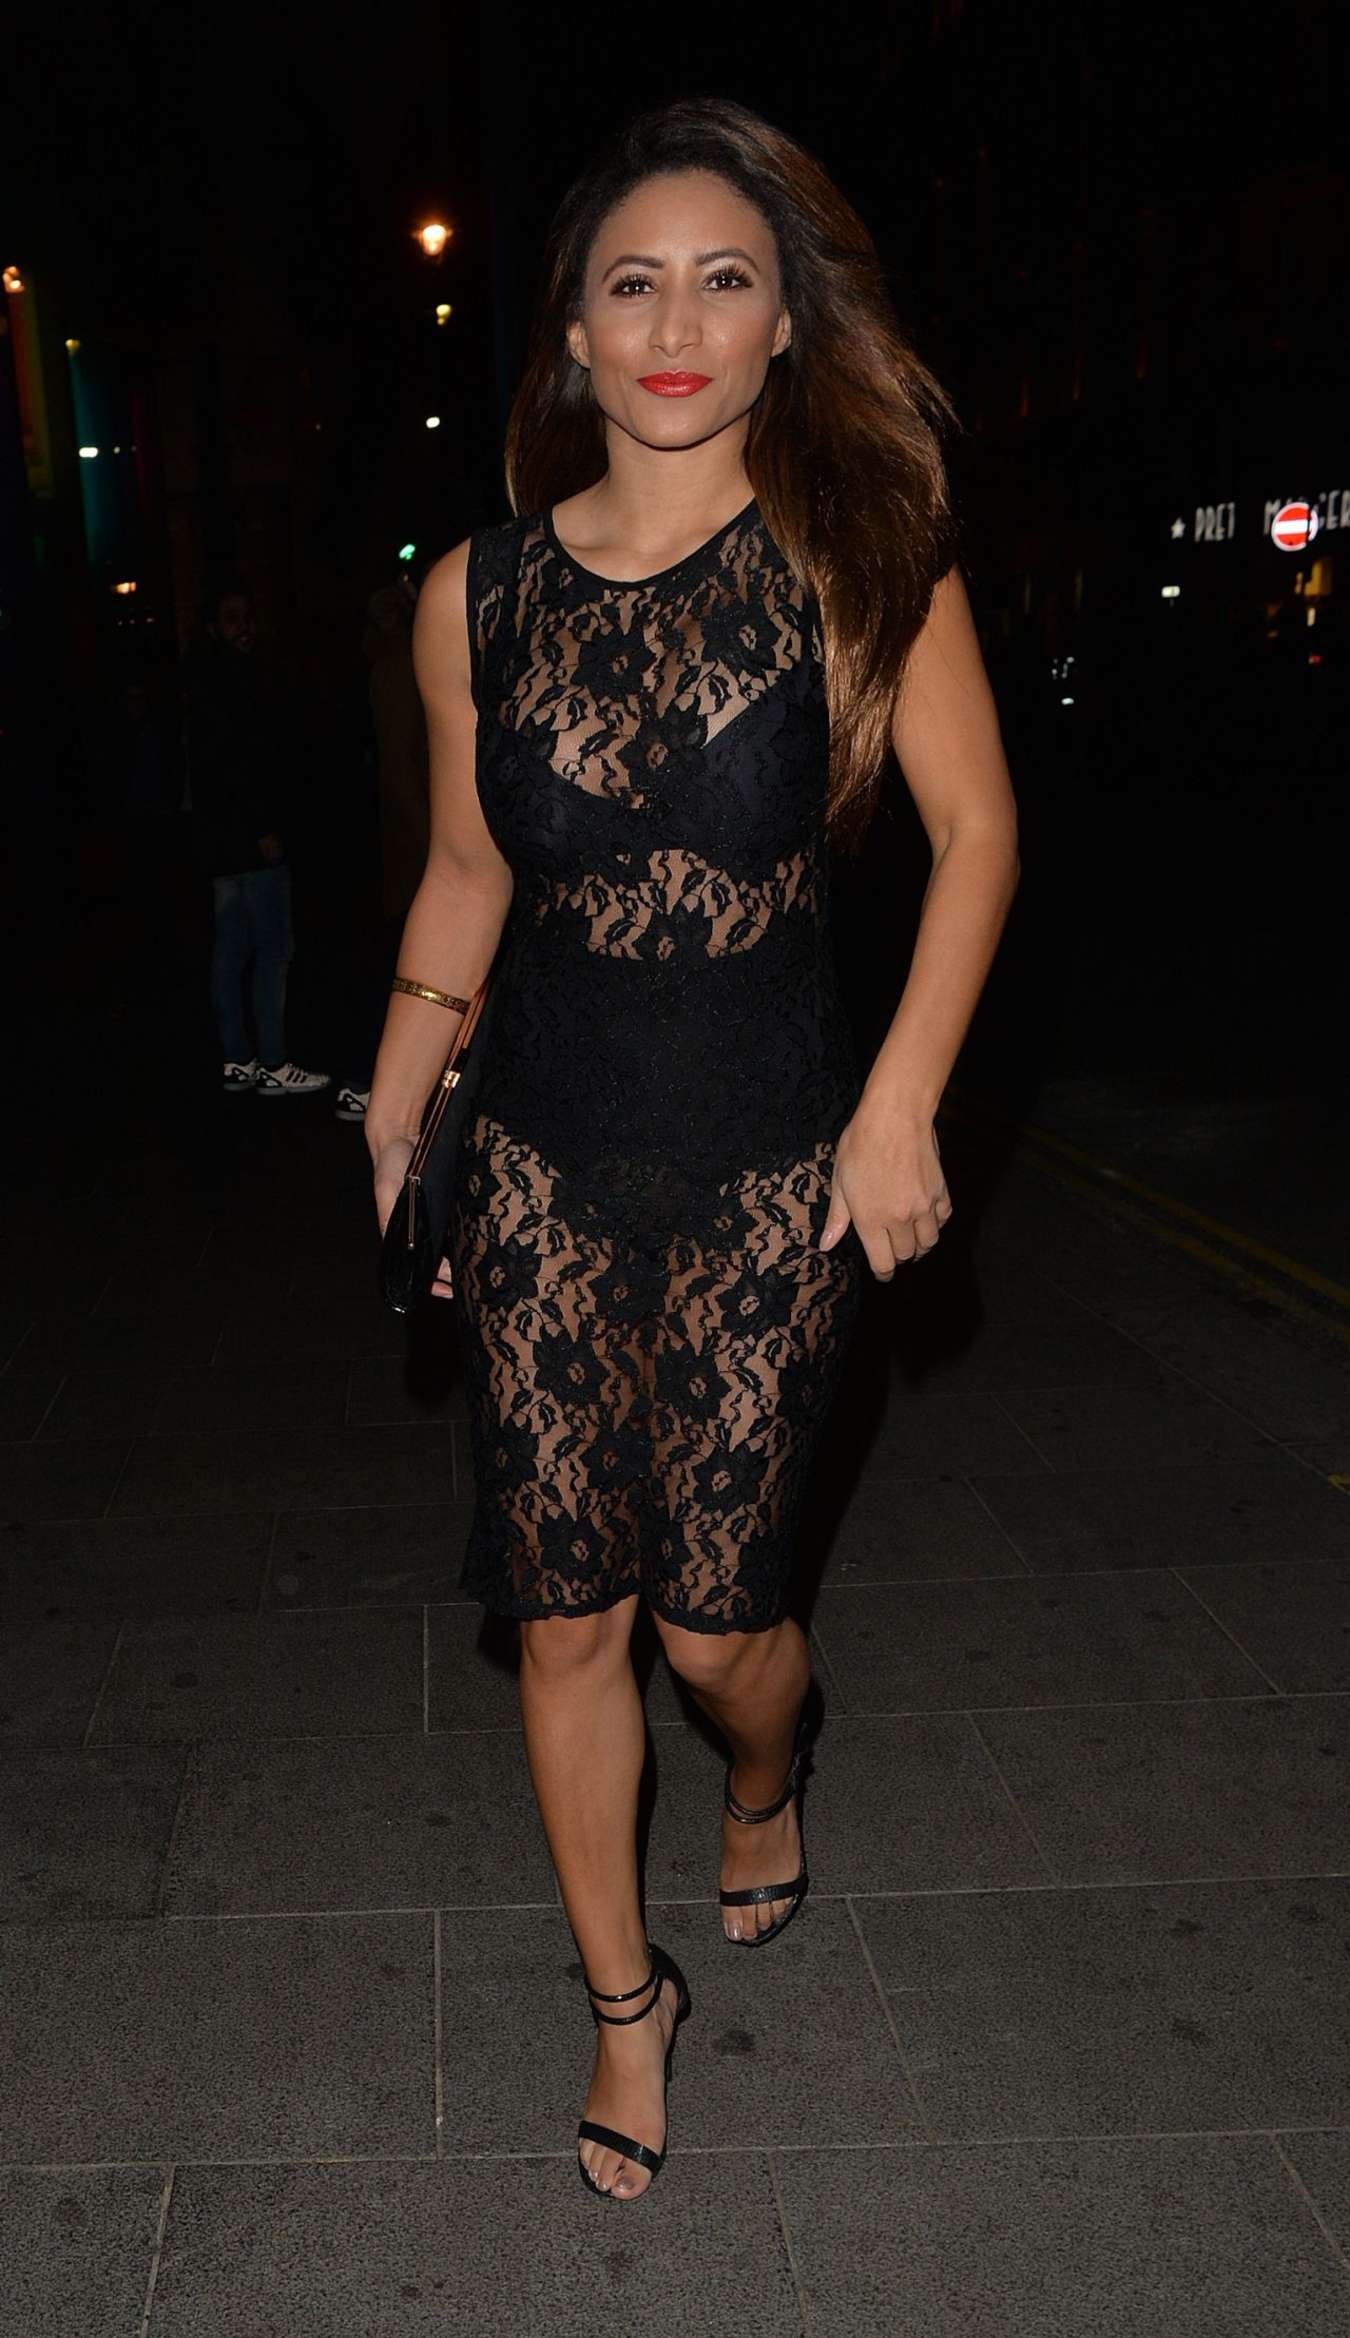 Kayleigh Morris Jasmin Walia's Clothing Launch Party in London